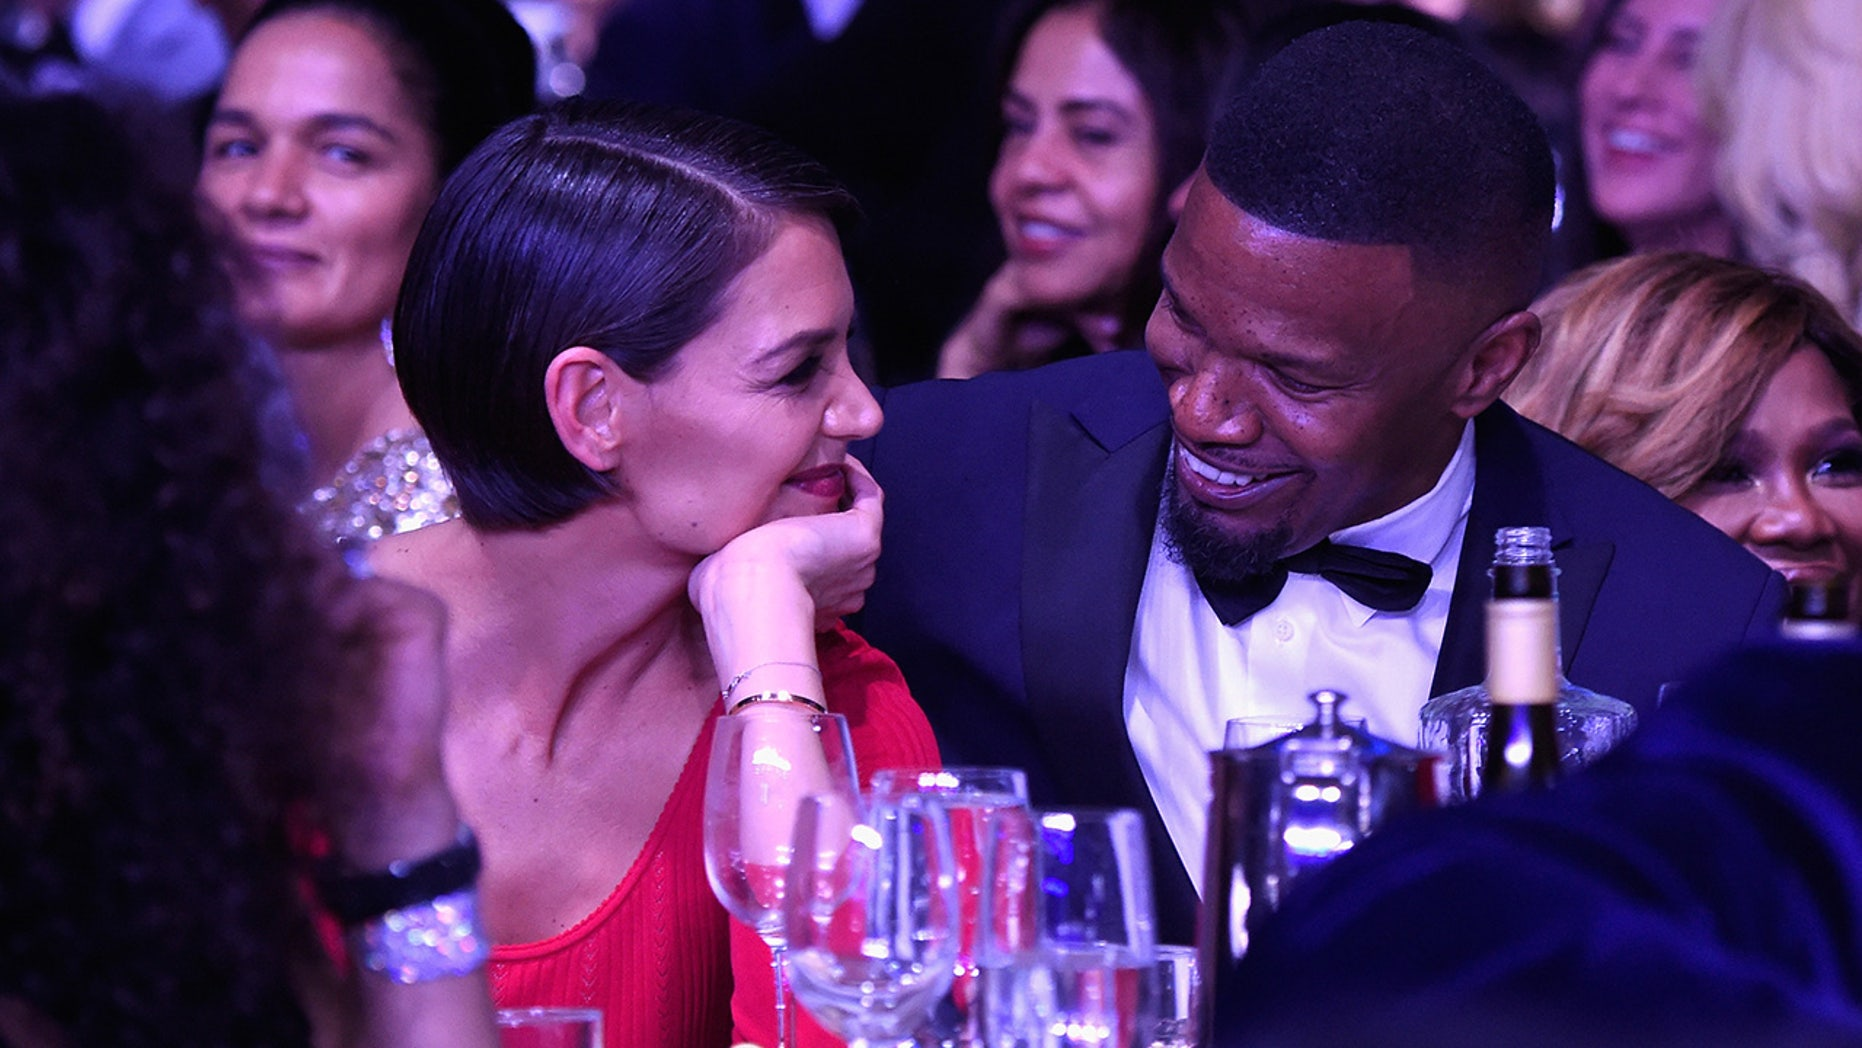 NEW YORK, NY - JANUARY 27:  Katie Holmes and Jamie Foxx attend the Clive Davis and Recording Academy Pre-GRAMMY Gala and GRAMMY Salute to Industry Icons Honoring Jay-Z on January 27, 2018 in New York City.  (Photo by Kevin Mazur/Getty Images for NARAS)